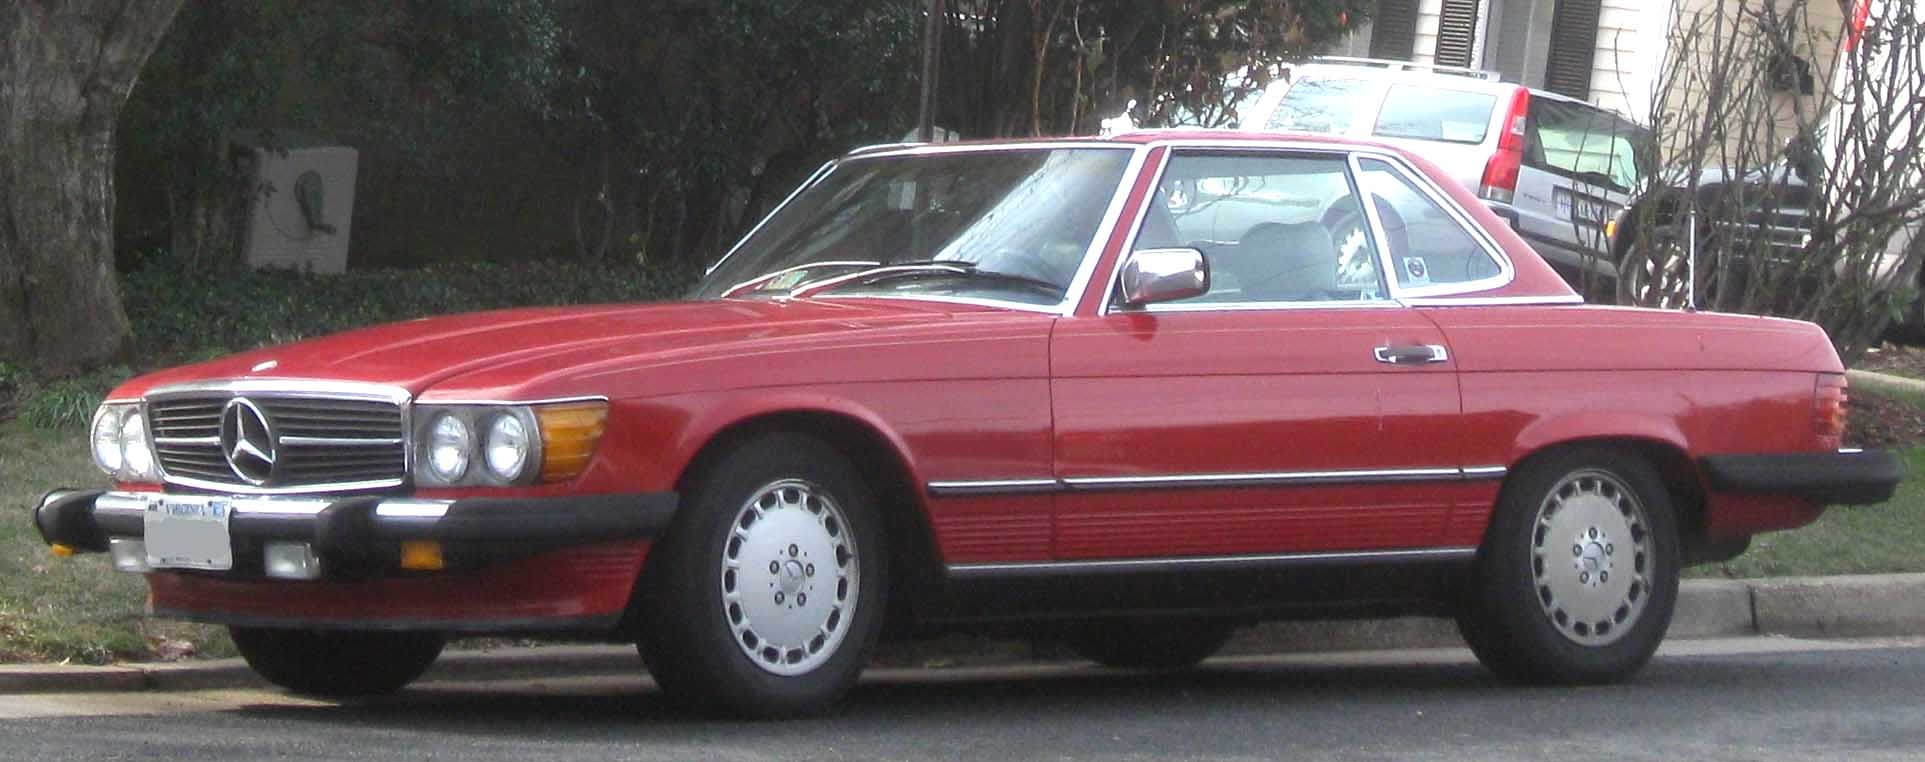 Mercedes Sl Modified New Filemercedes Benz Sl R107 Wikimedia Commons-1484 Of Lovely Mercedes Sl Modified-1484